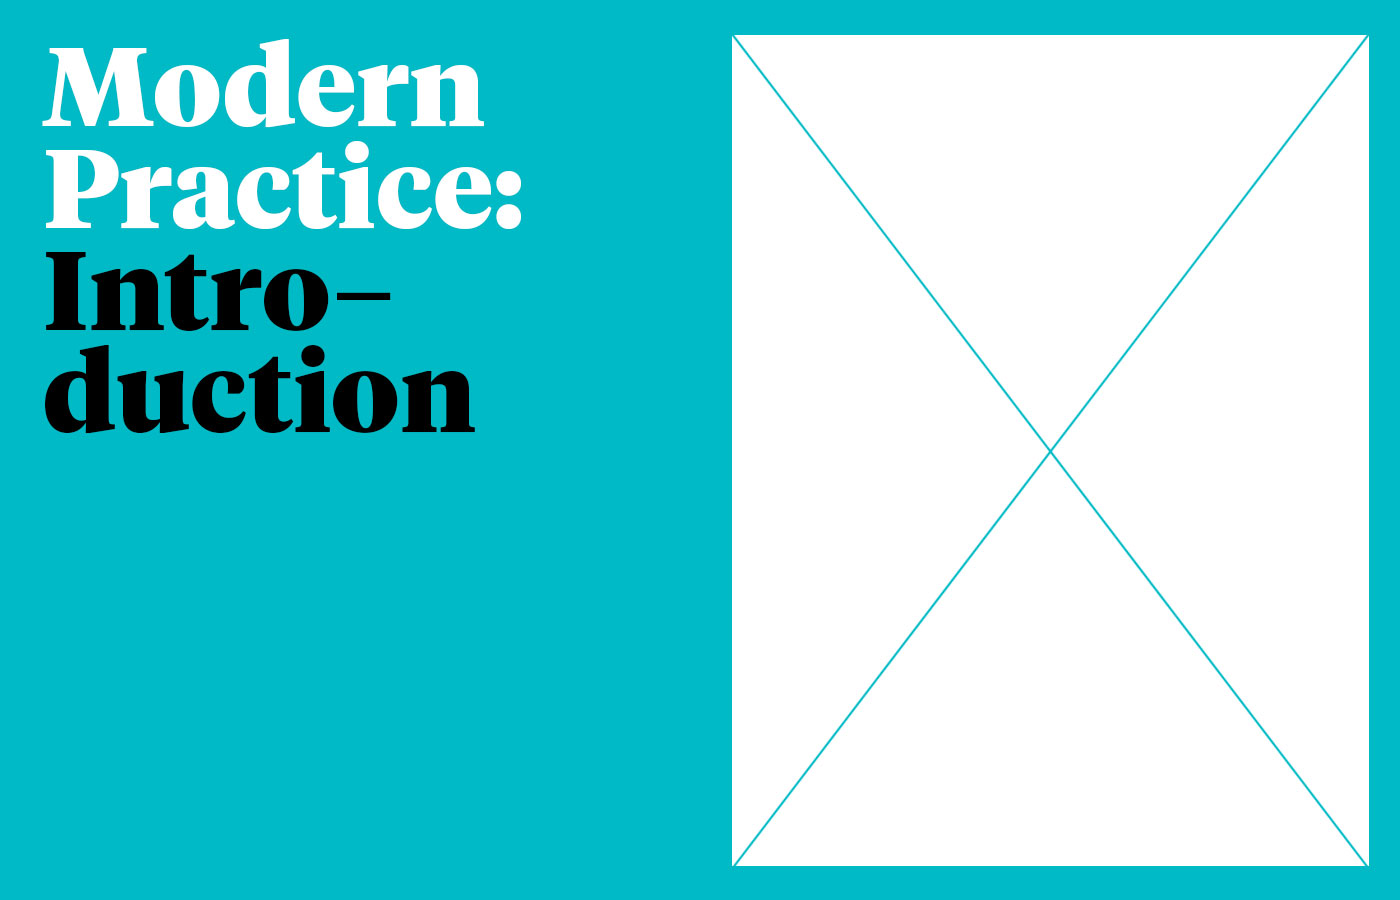 Cover image: Modern Practice